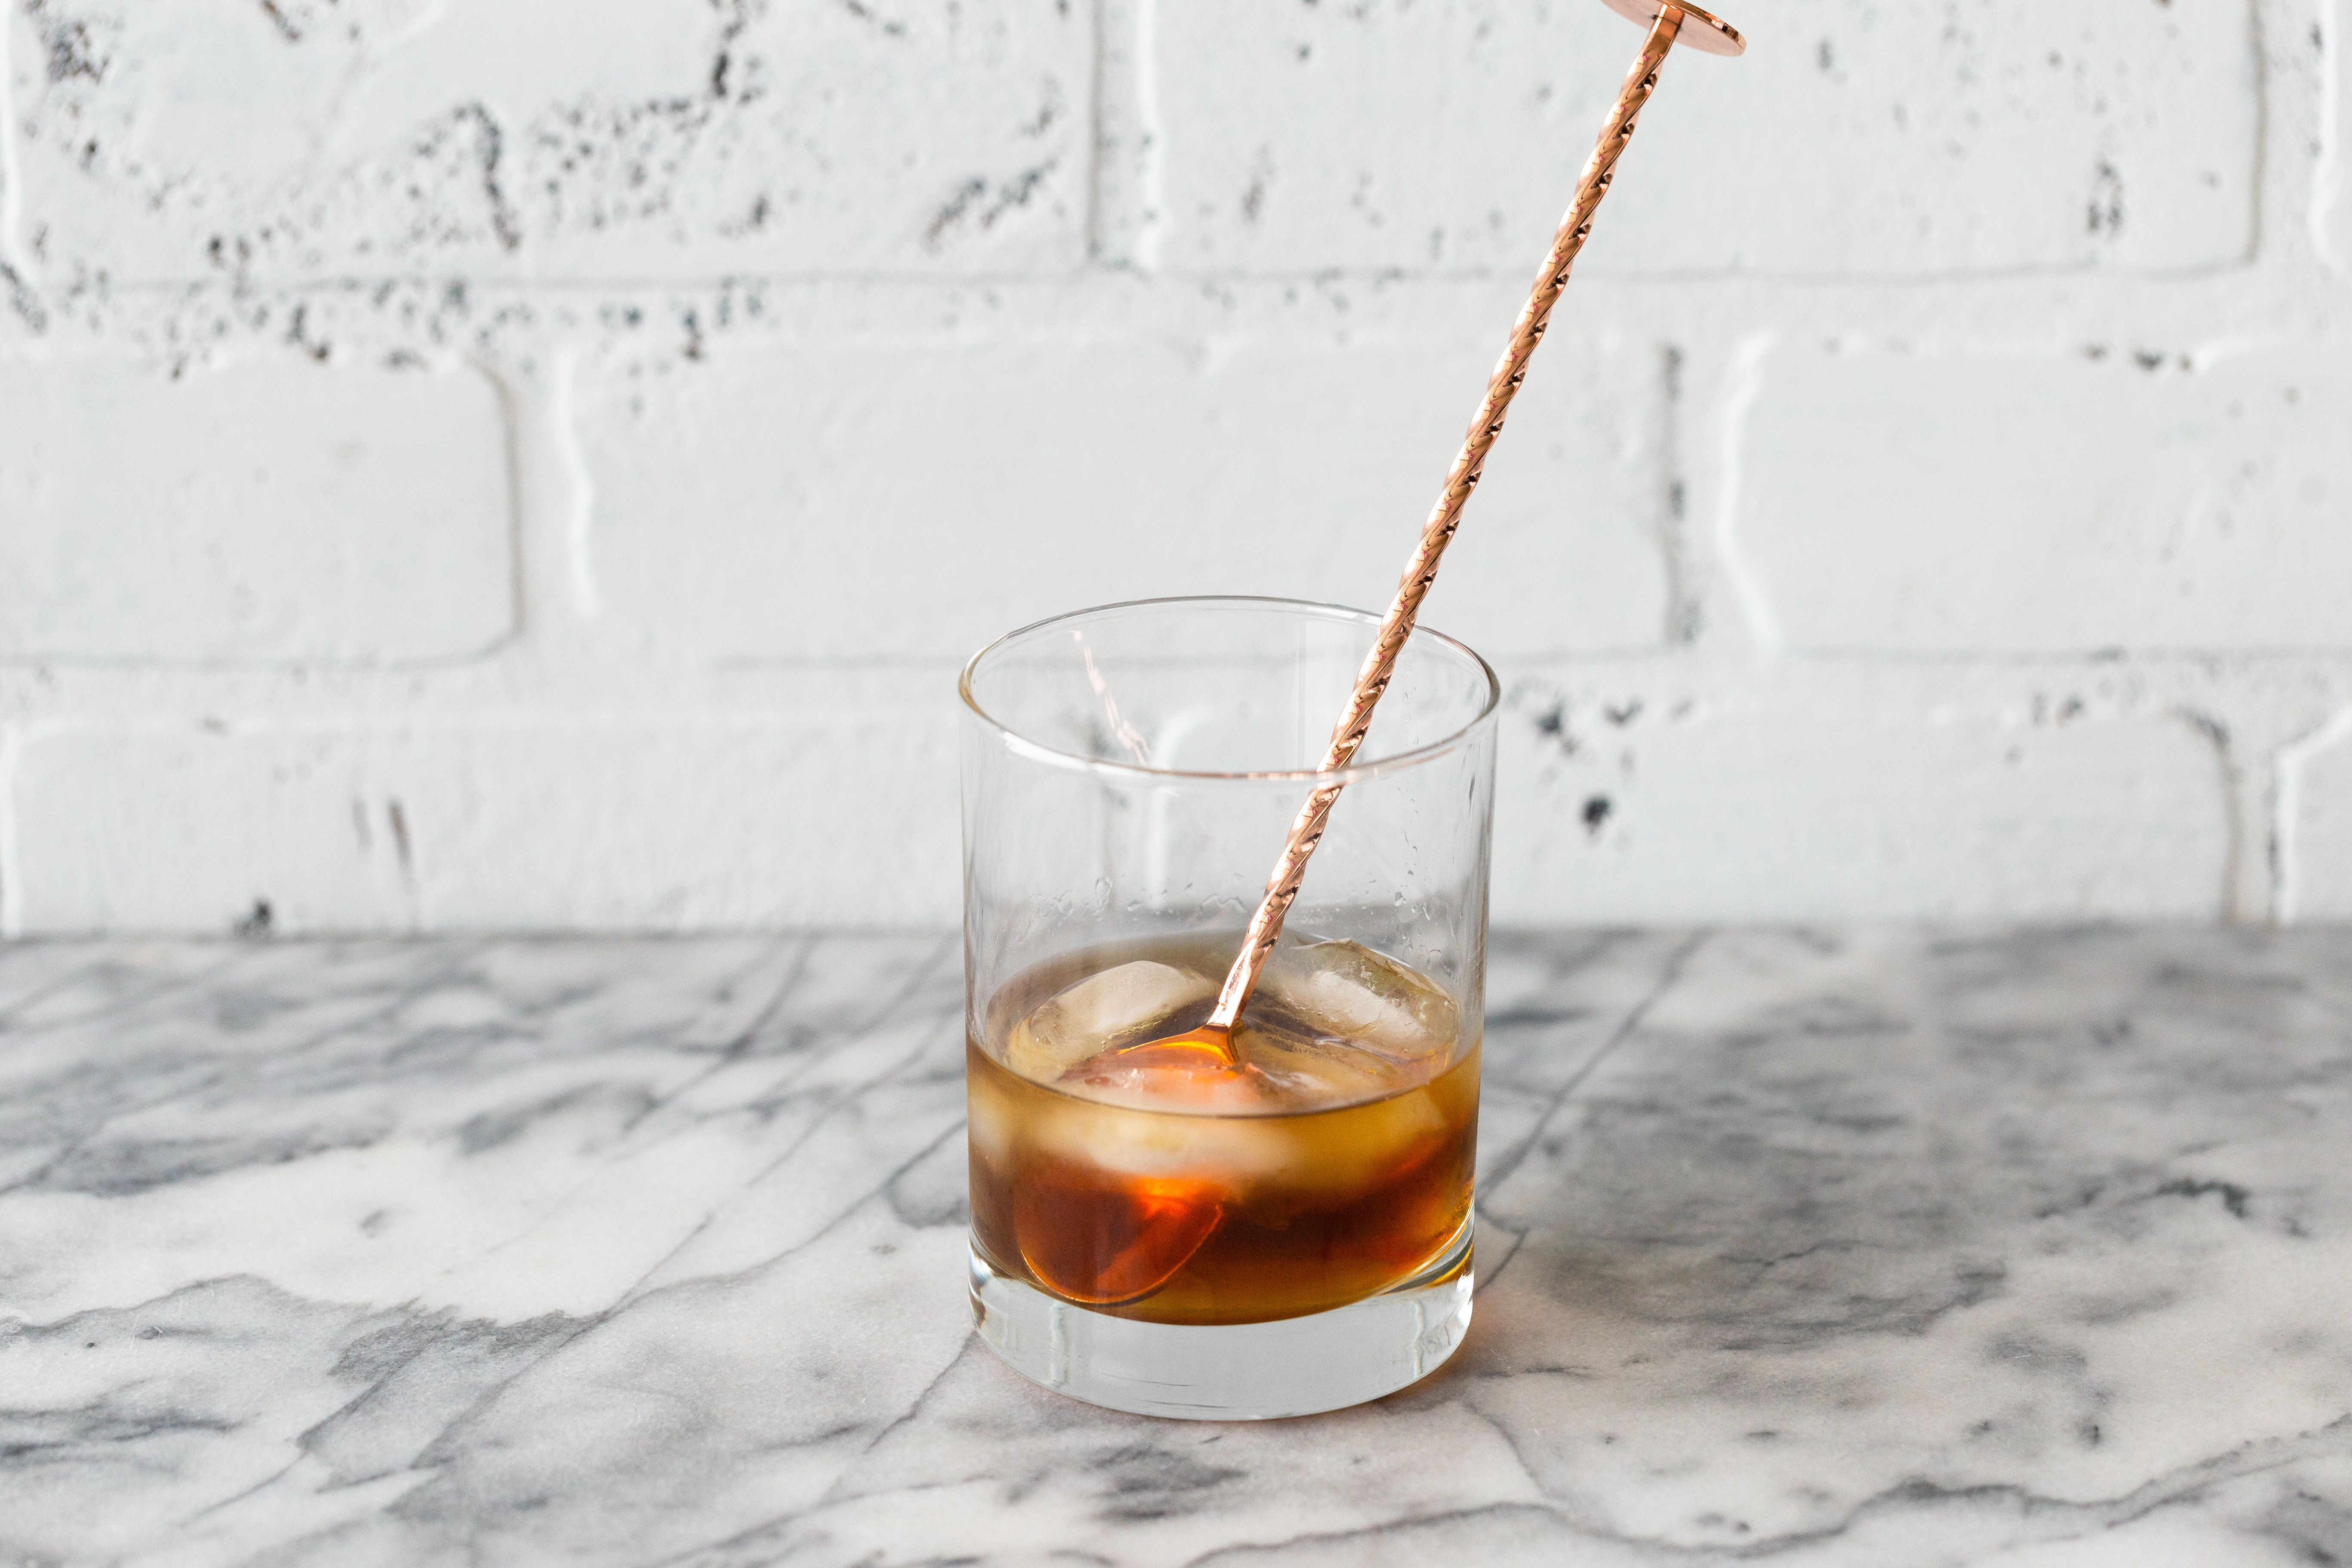 Black Russian cocktail with a stirrer.